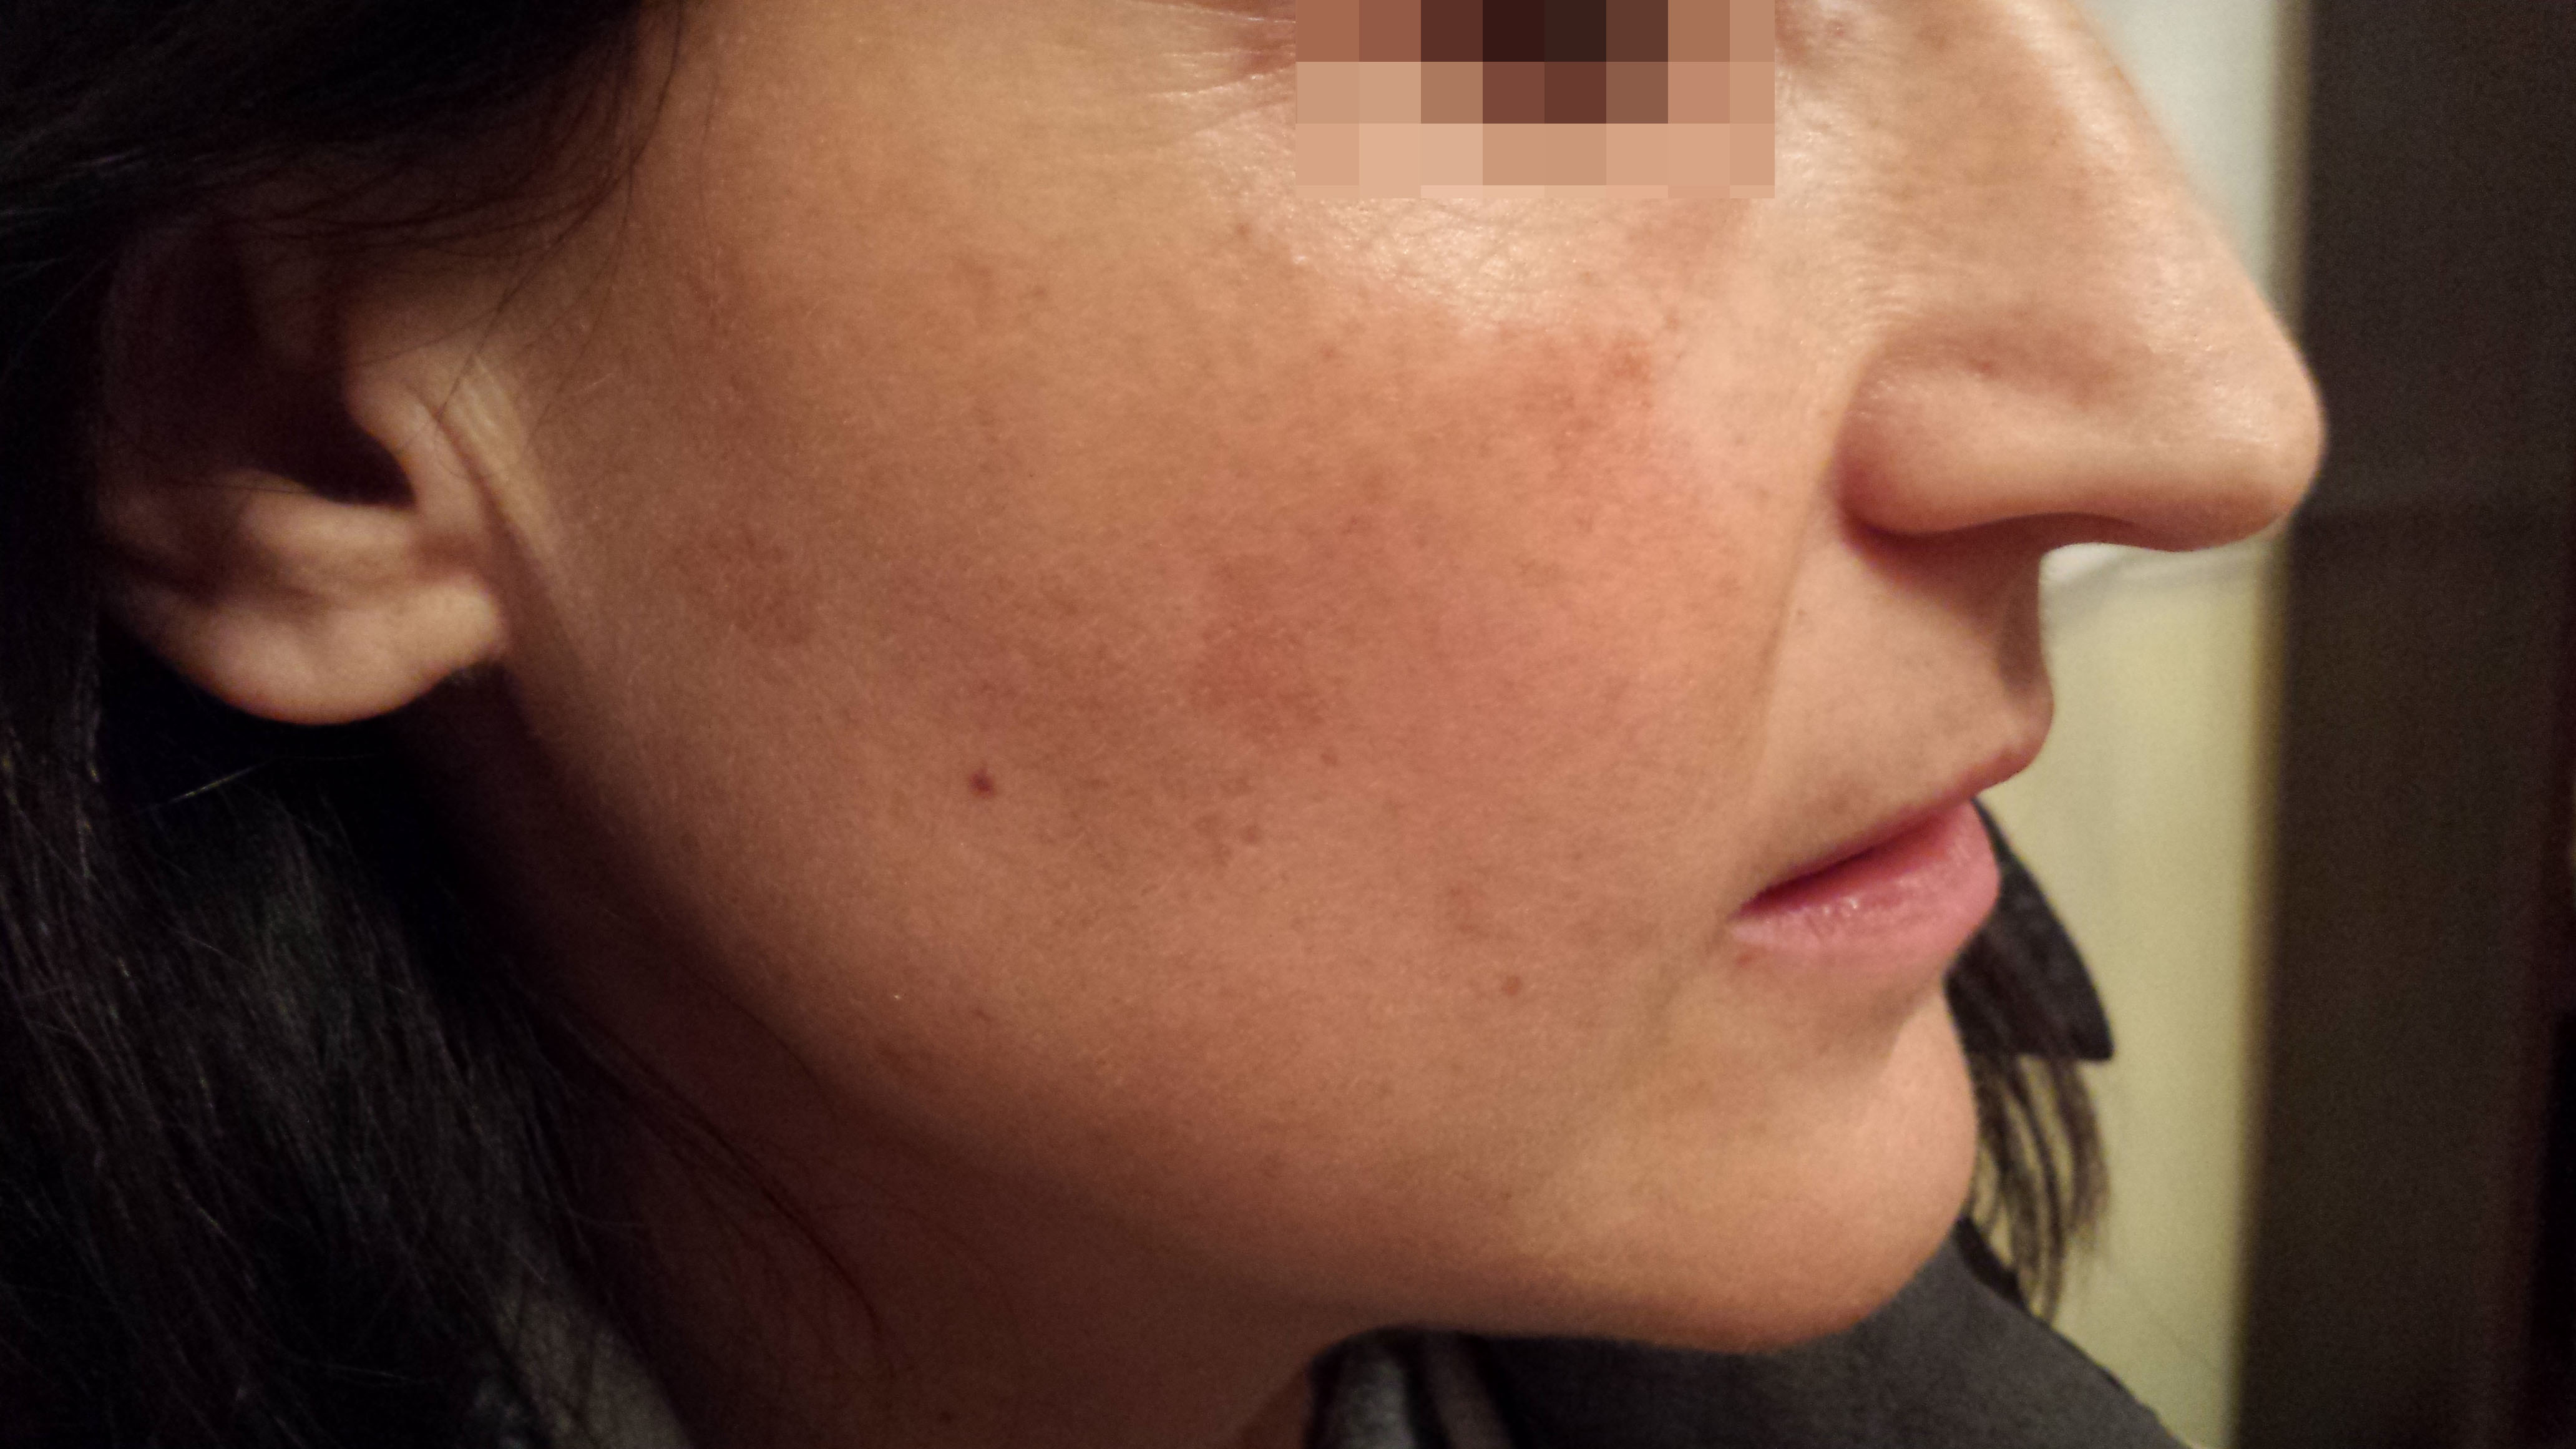 London-Hormonal-Pigmentation-ID77033-Before_After-1st_20160320_211528